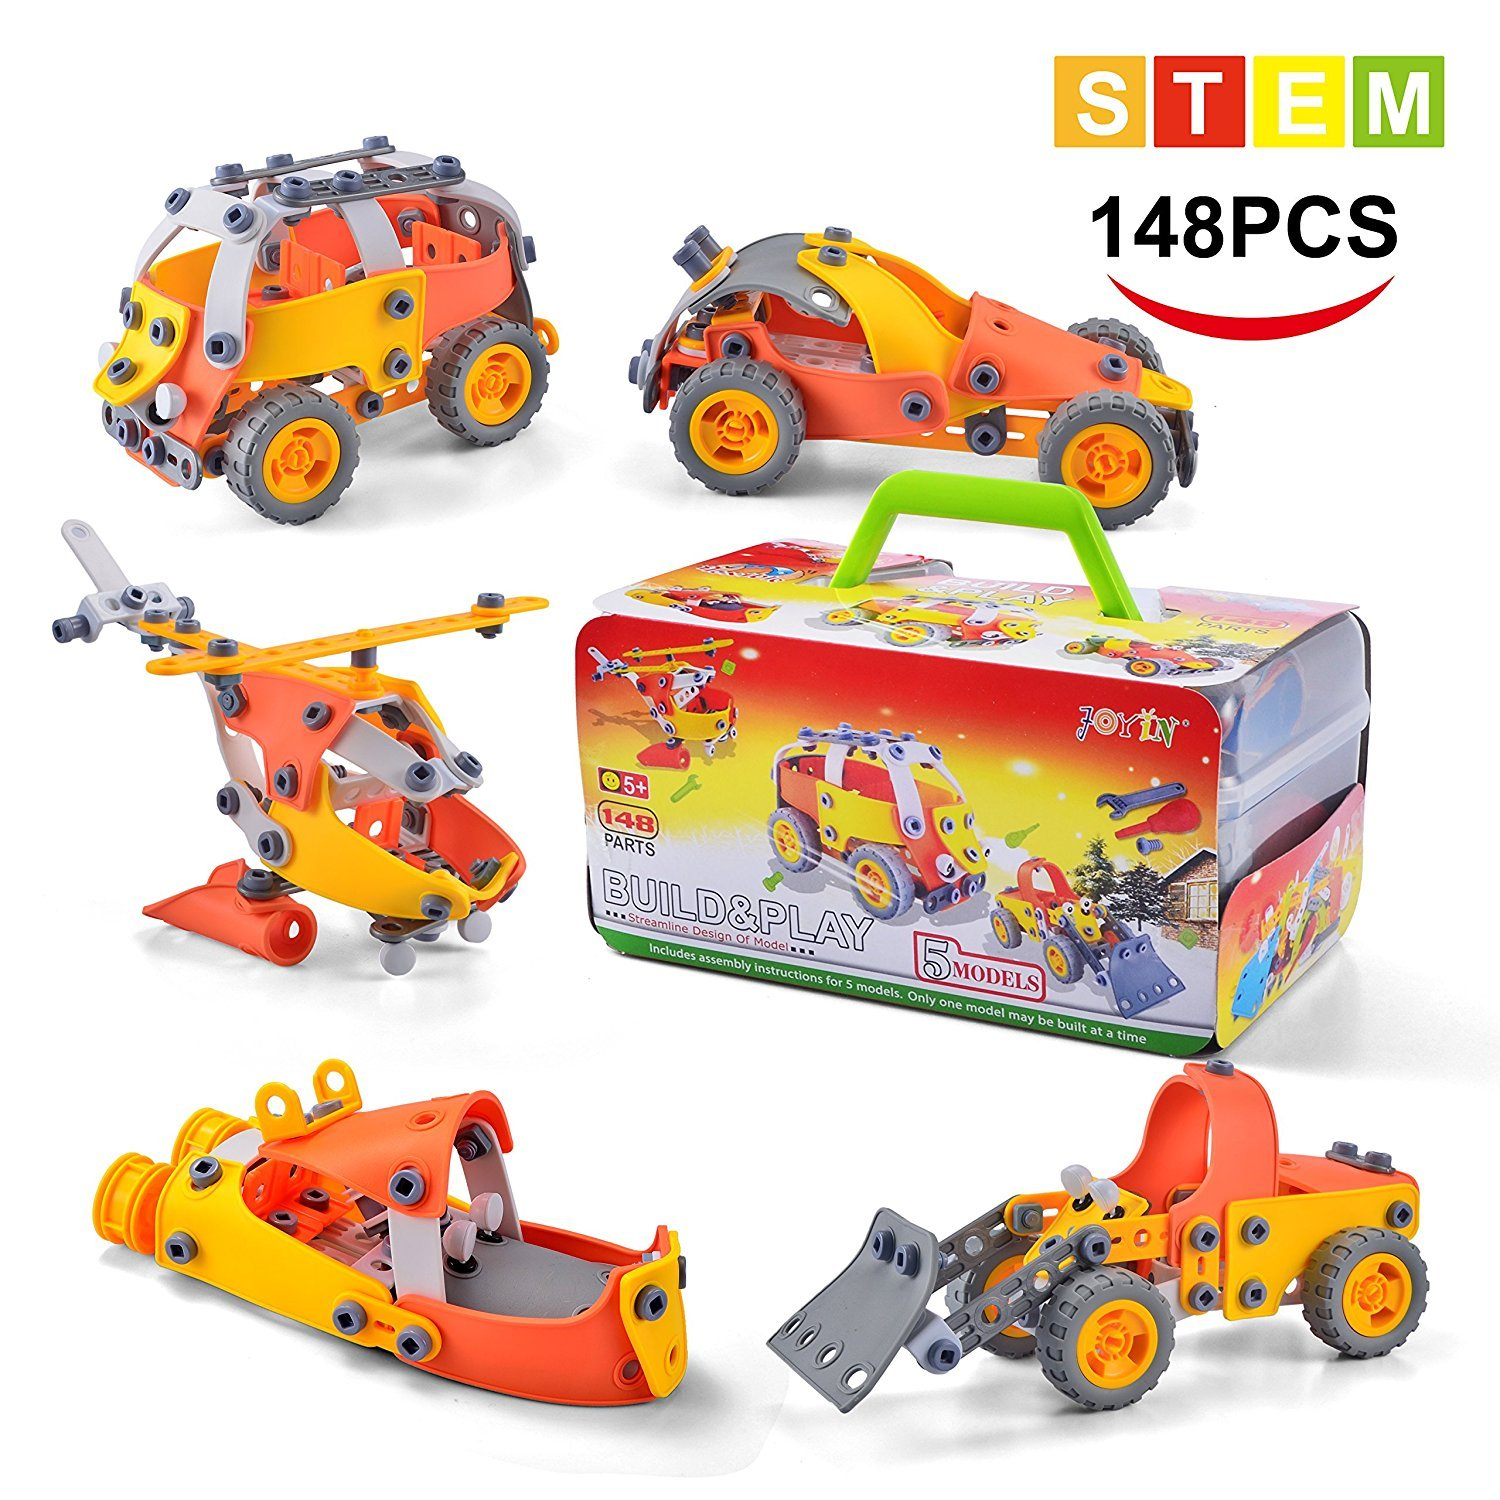 Model Building Blocks Toys Set Cars Airplane DIY Kits to Build 5-in-1 STEM Learning Toys 148PCS Education Construction Engineering Building Toys Gifts For Kids Boys and Girls Toys Review